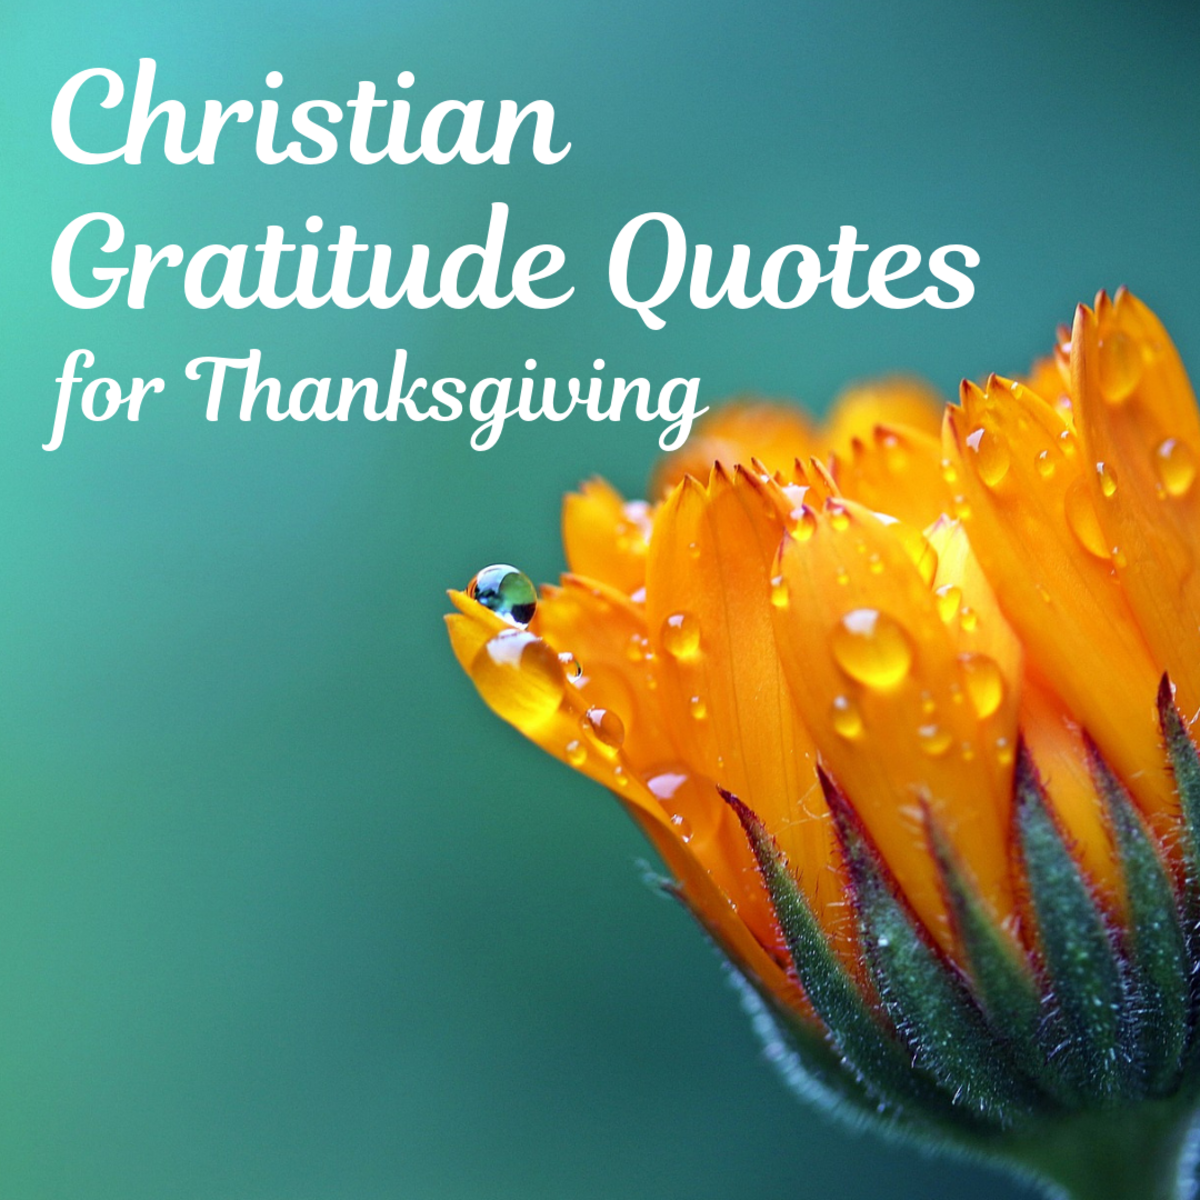 Christian Quotations for Thanksgiving From Newspaper Archives